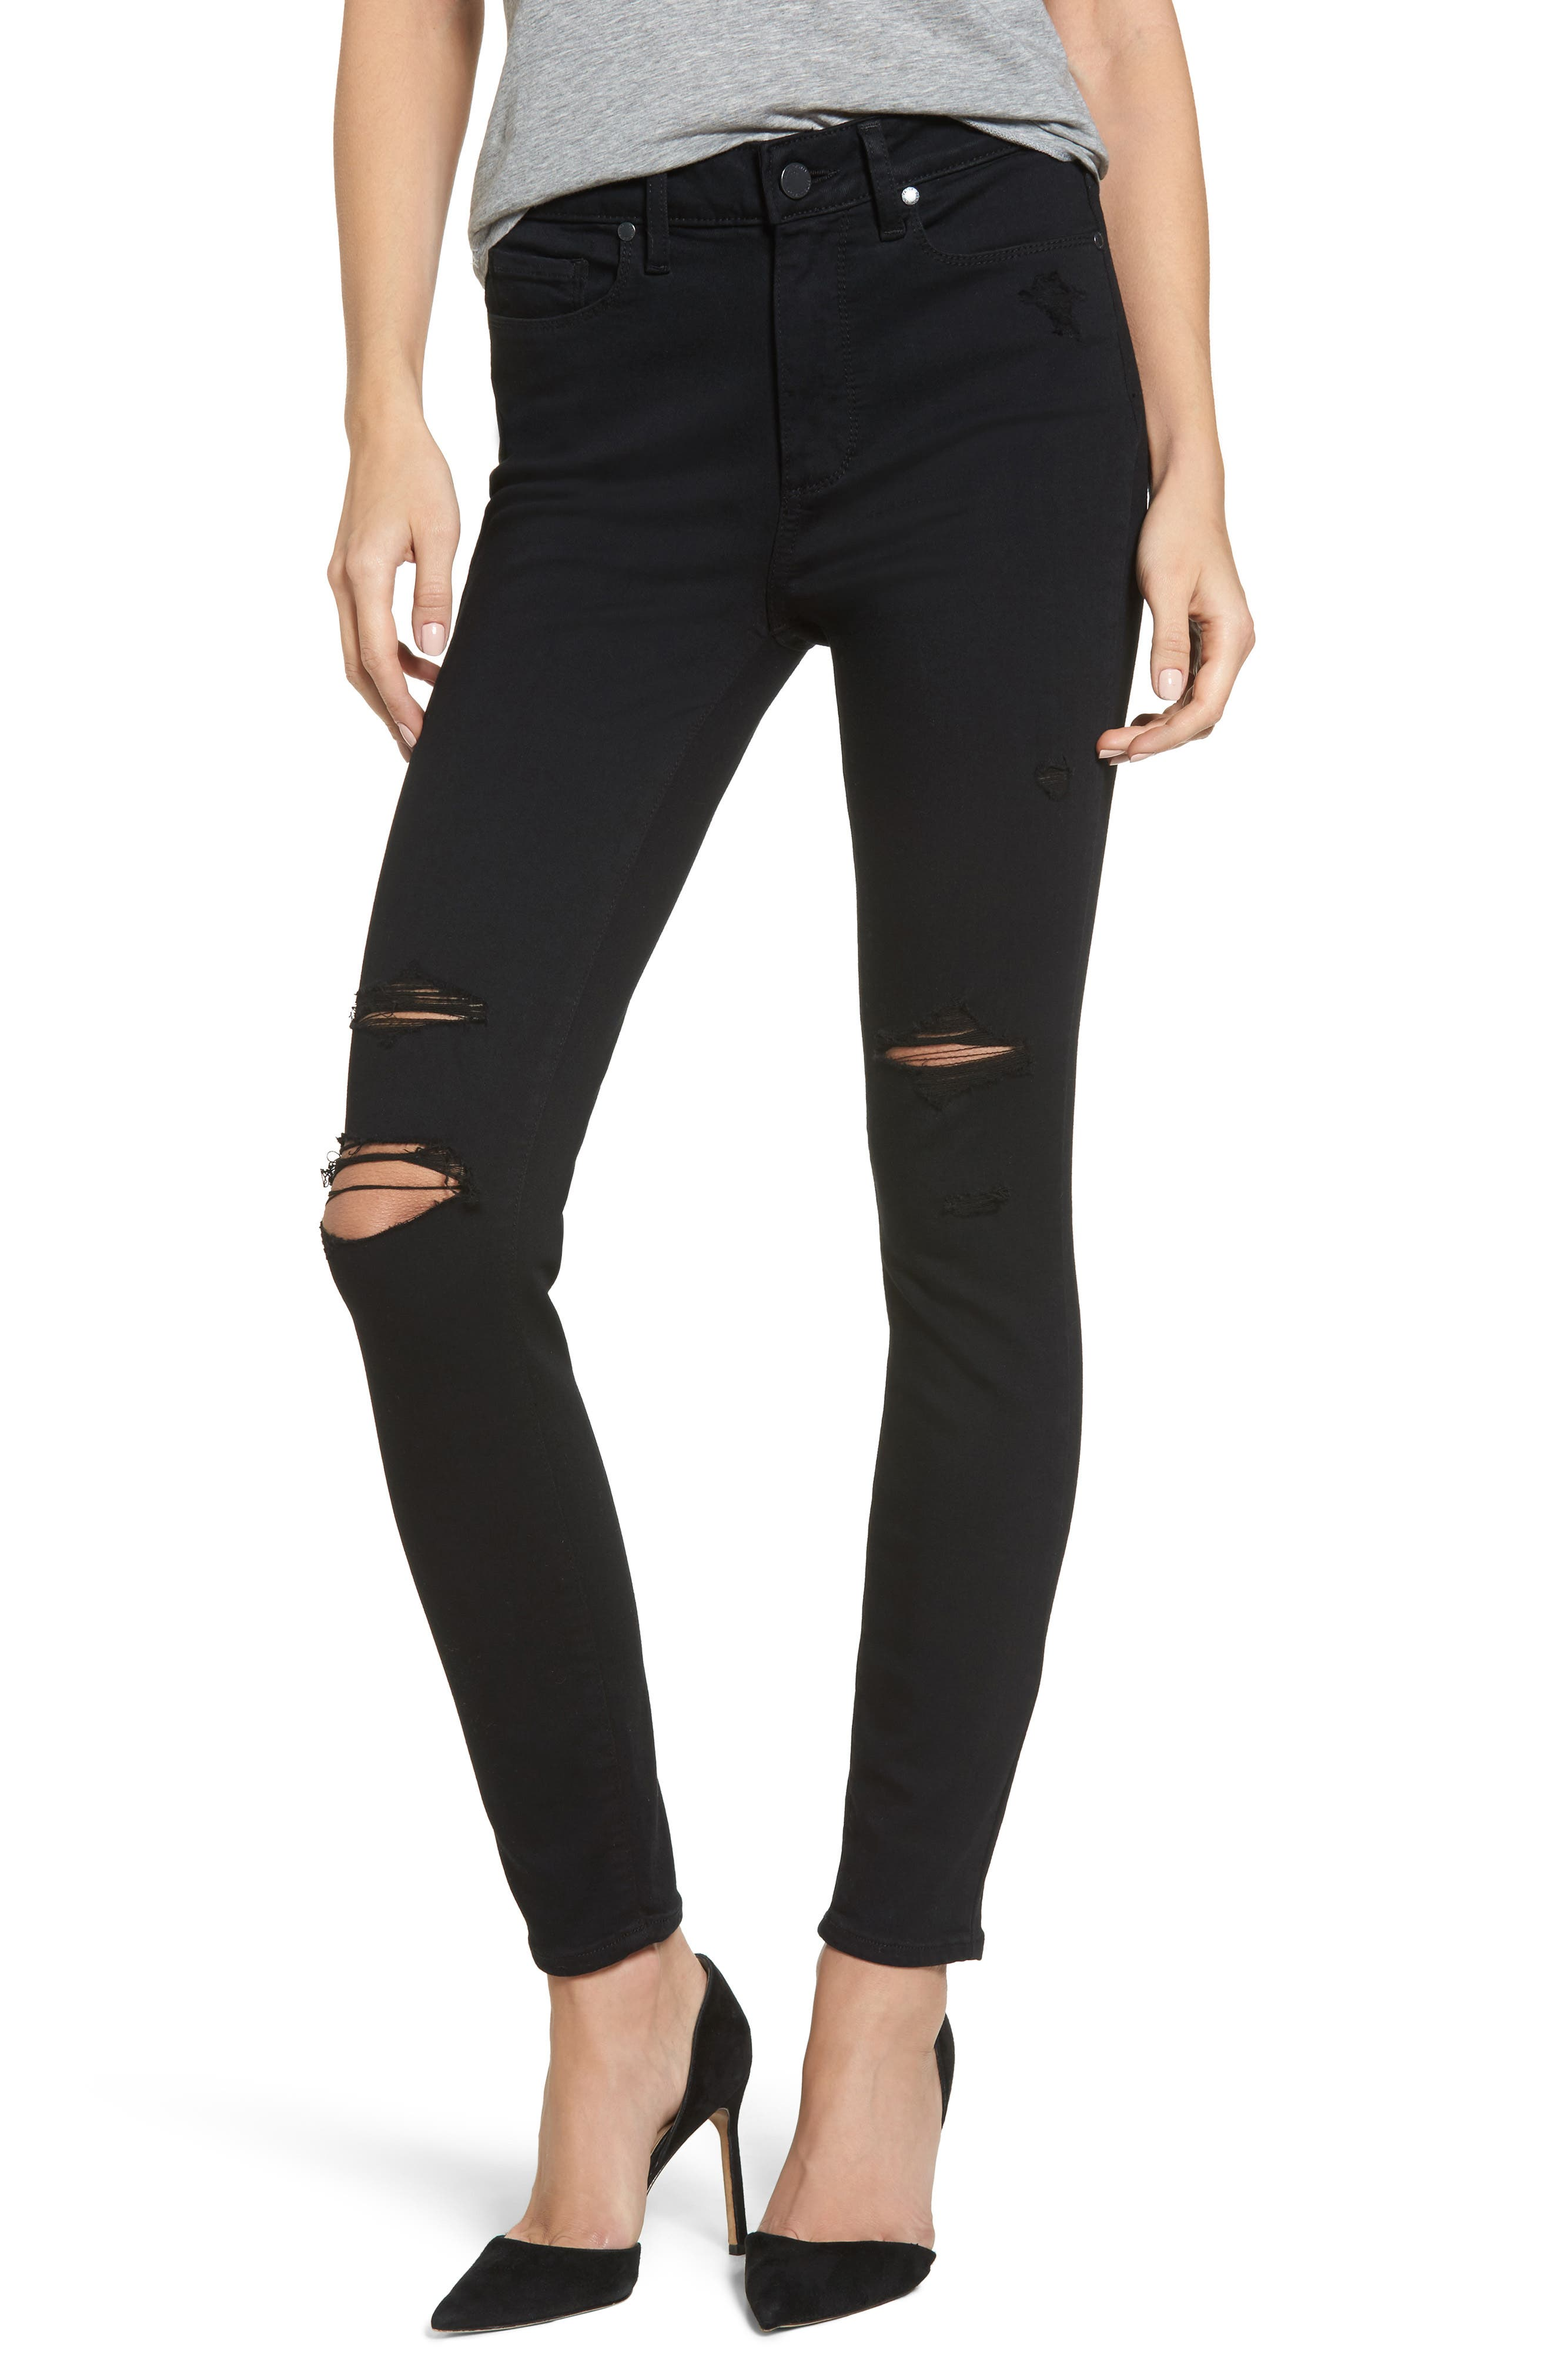 Transcend - Hoxton High Waist Ankle Skinny Jeans,                         Main,                         color, Black